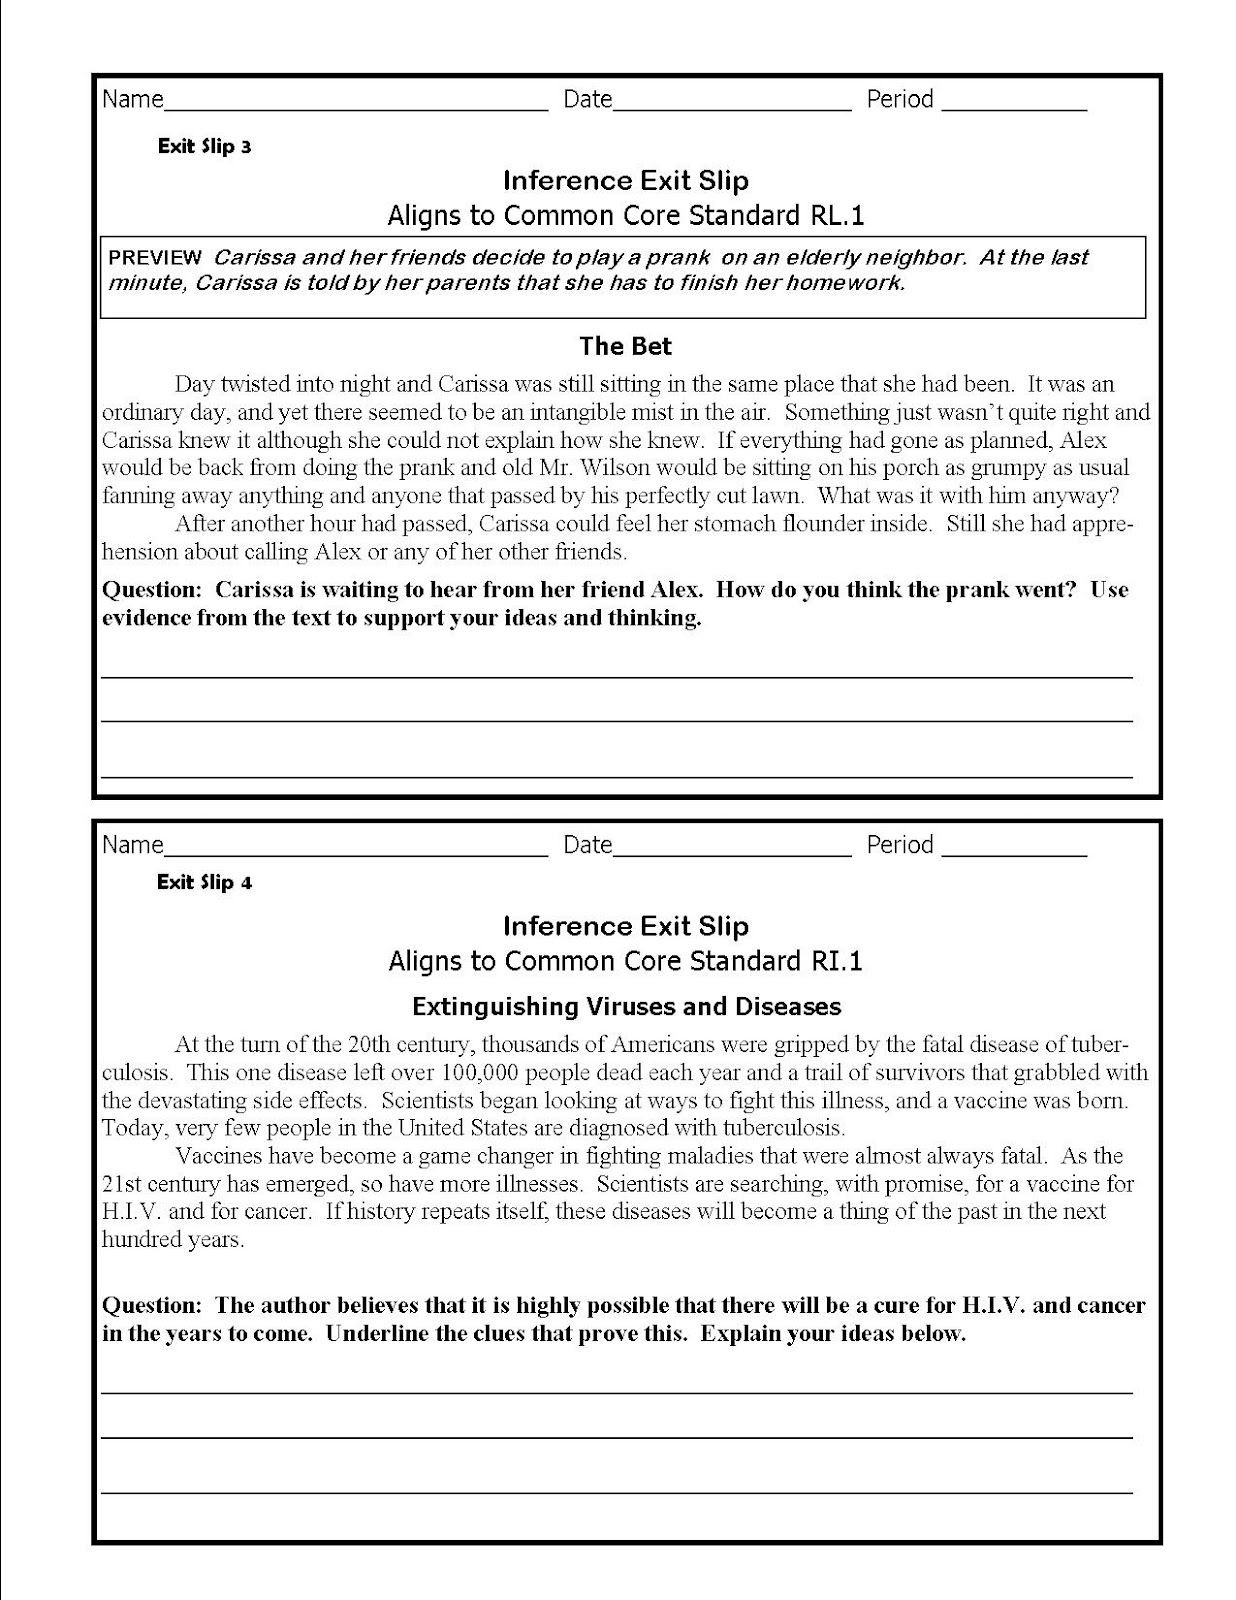 Middle School Inference Worksheets